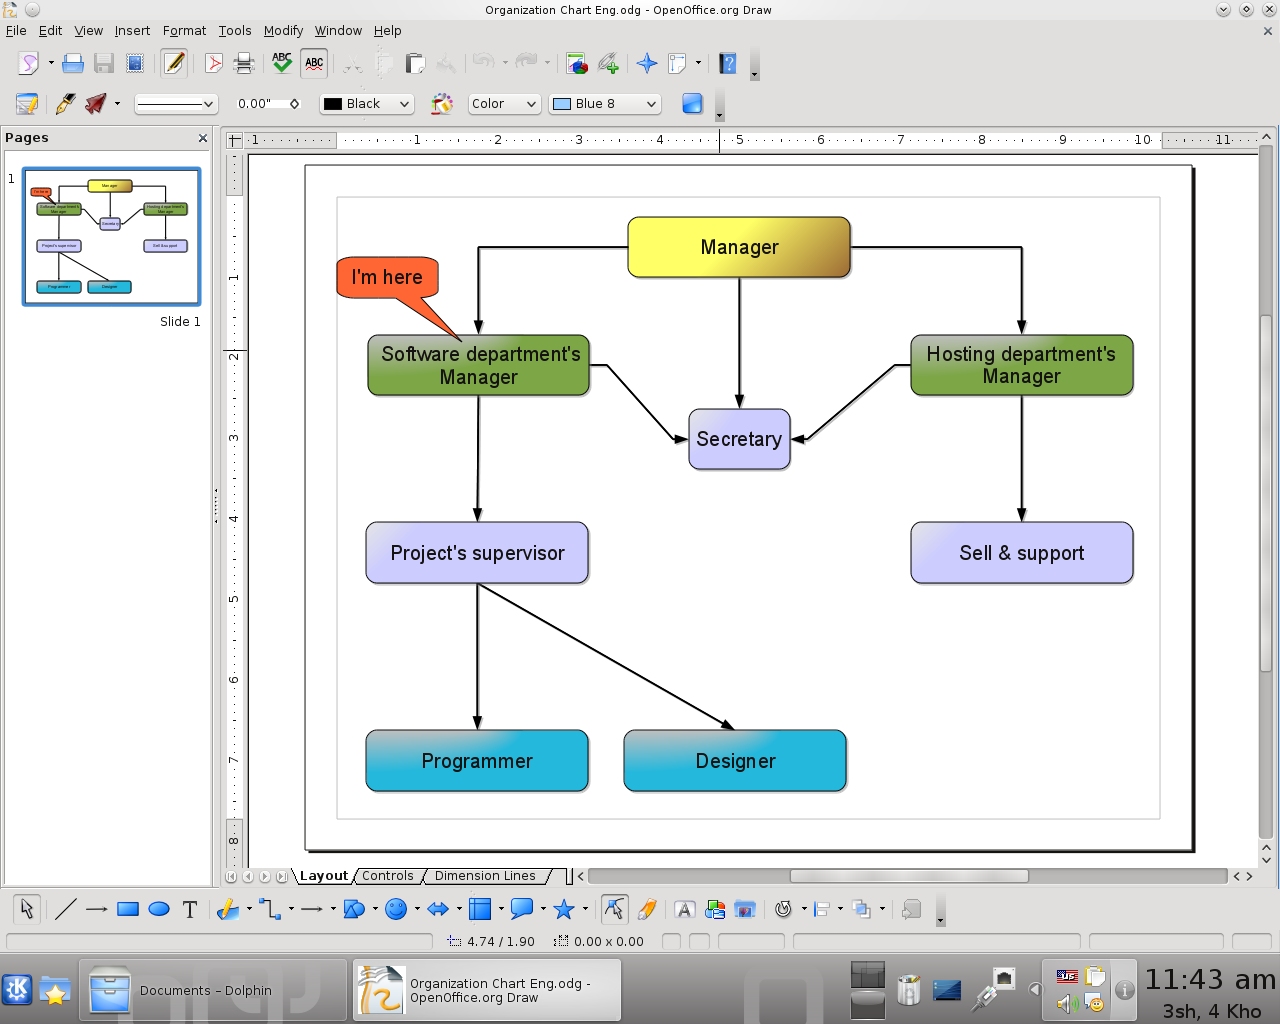 Drawing organization charts easily with openoffice draw